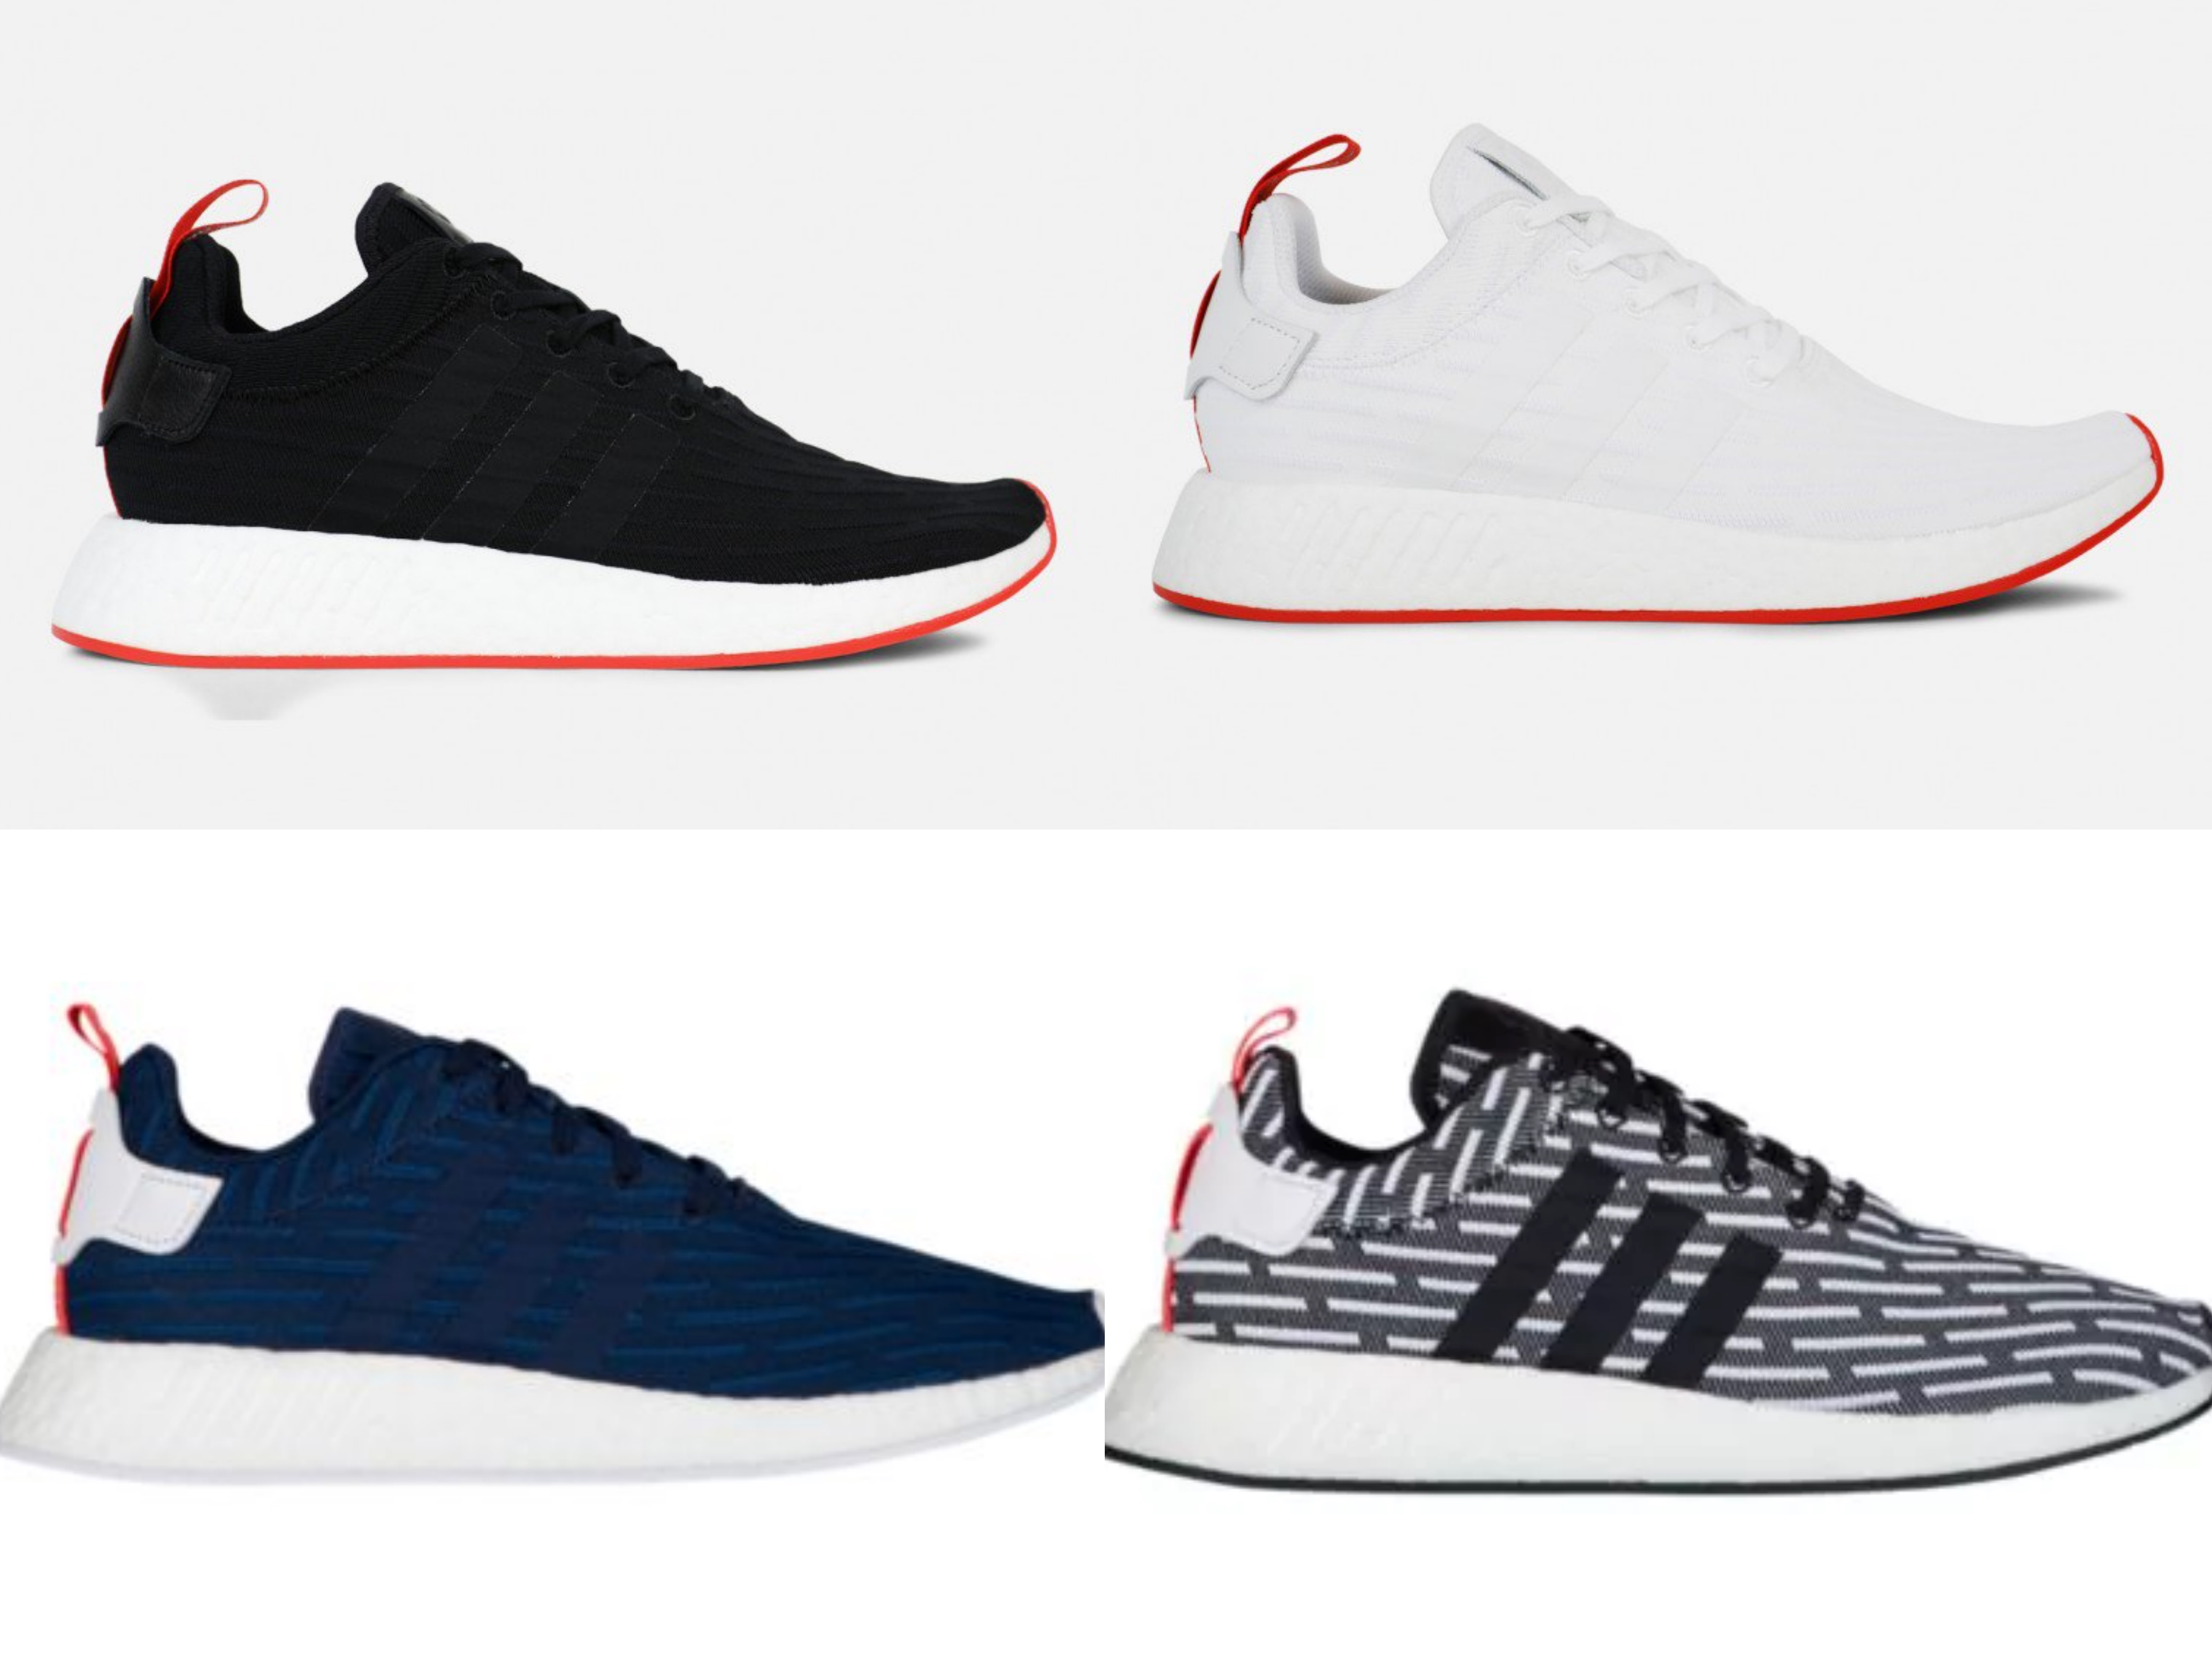 adidas will be dropping these three new nmd r2 colorways in